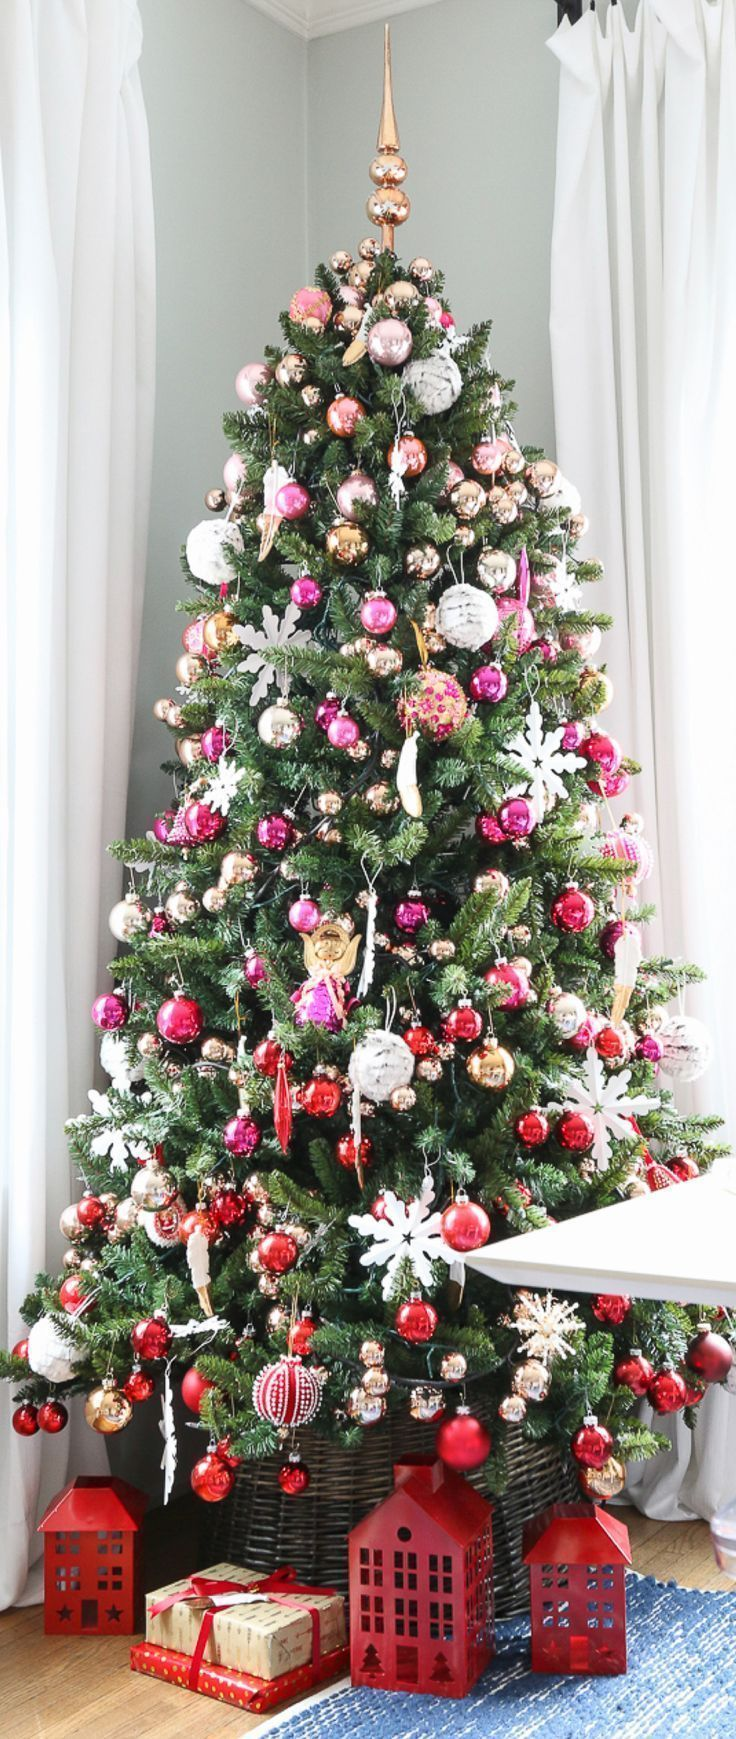 Red Pink Ombre Gradient Christmas Tree Christmas Decor Ideas Pink Christmas Tree Decorations Christmas Tree Decorations Christmas Tree Ornaments